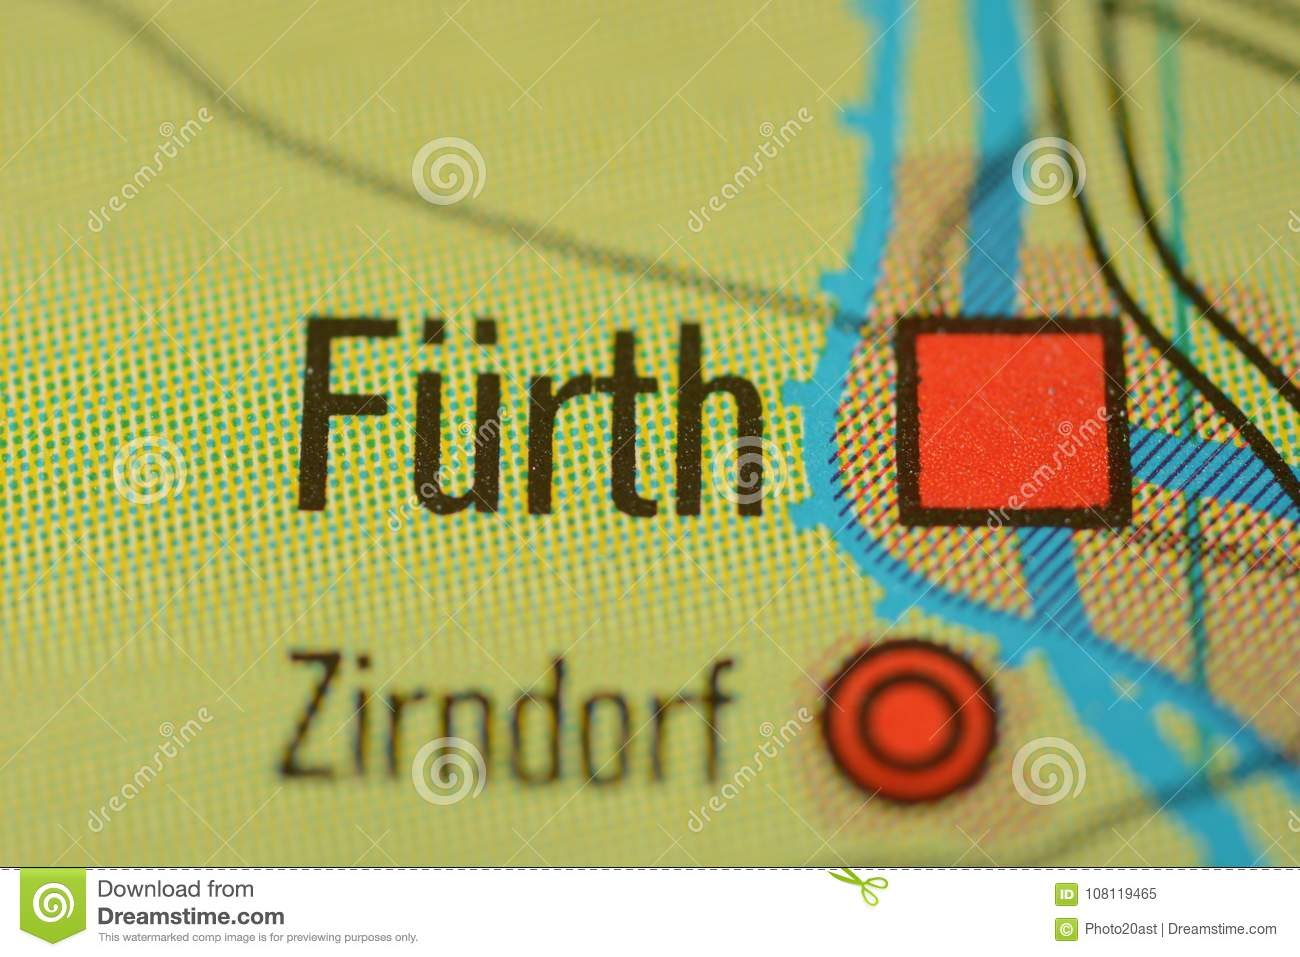 Map Of Zirndorf Germany.The City Name Furth Near Nuremberg Germany On The Map Stock Image